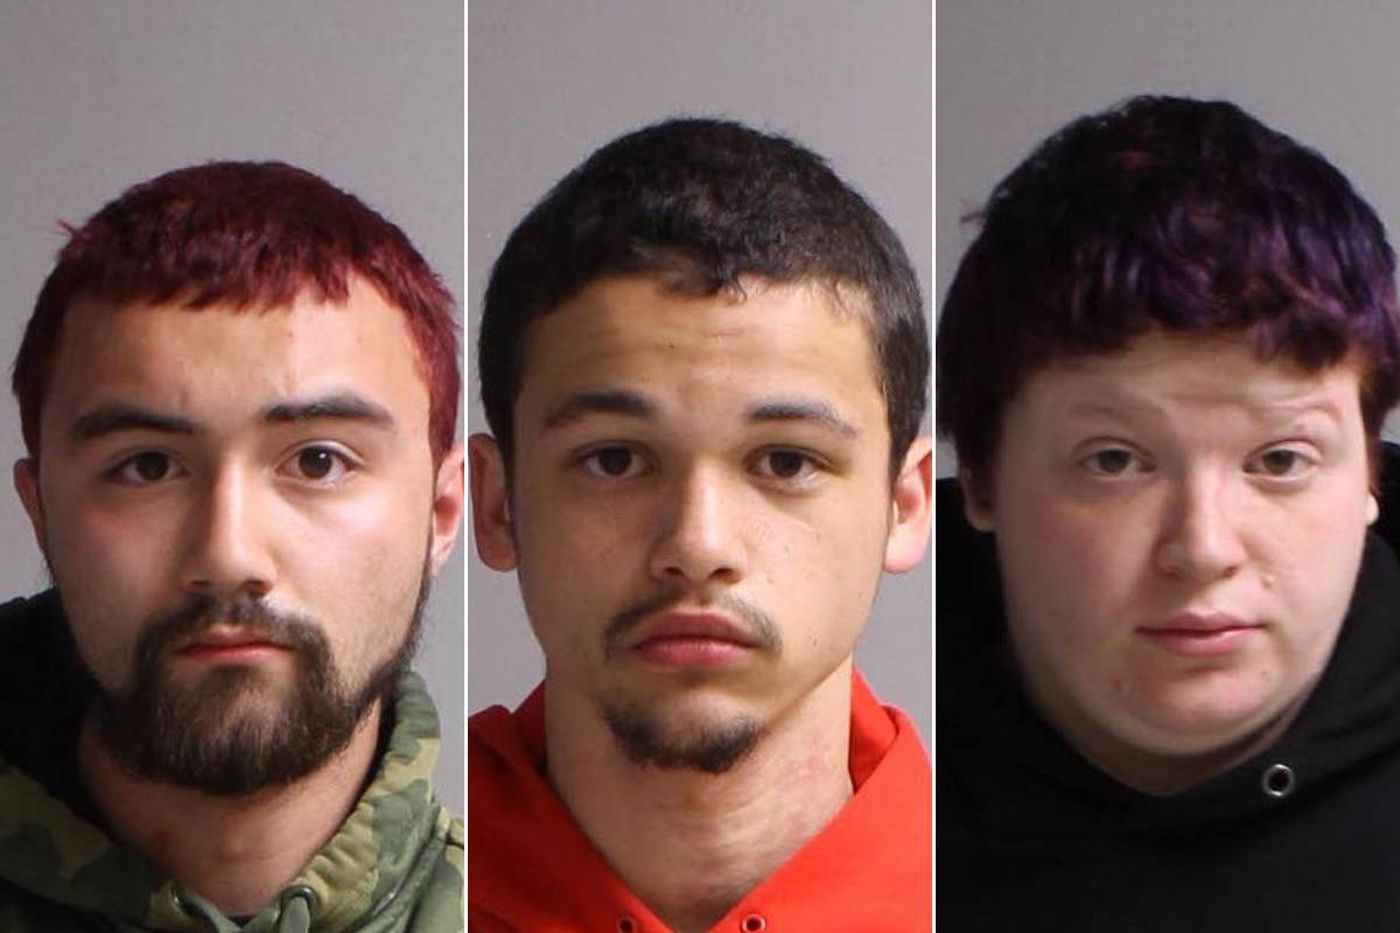 Dylan Pontaski, Shawn Carter, and Hollie Kulp are charged with trying to break into businesses shuttered by the coronavirus pandemic.